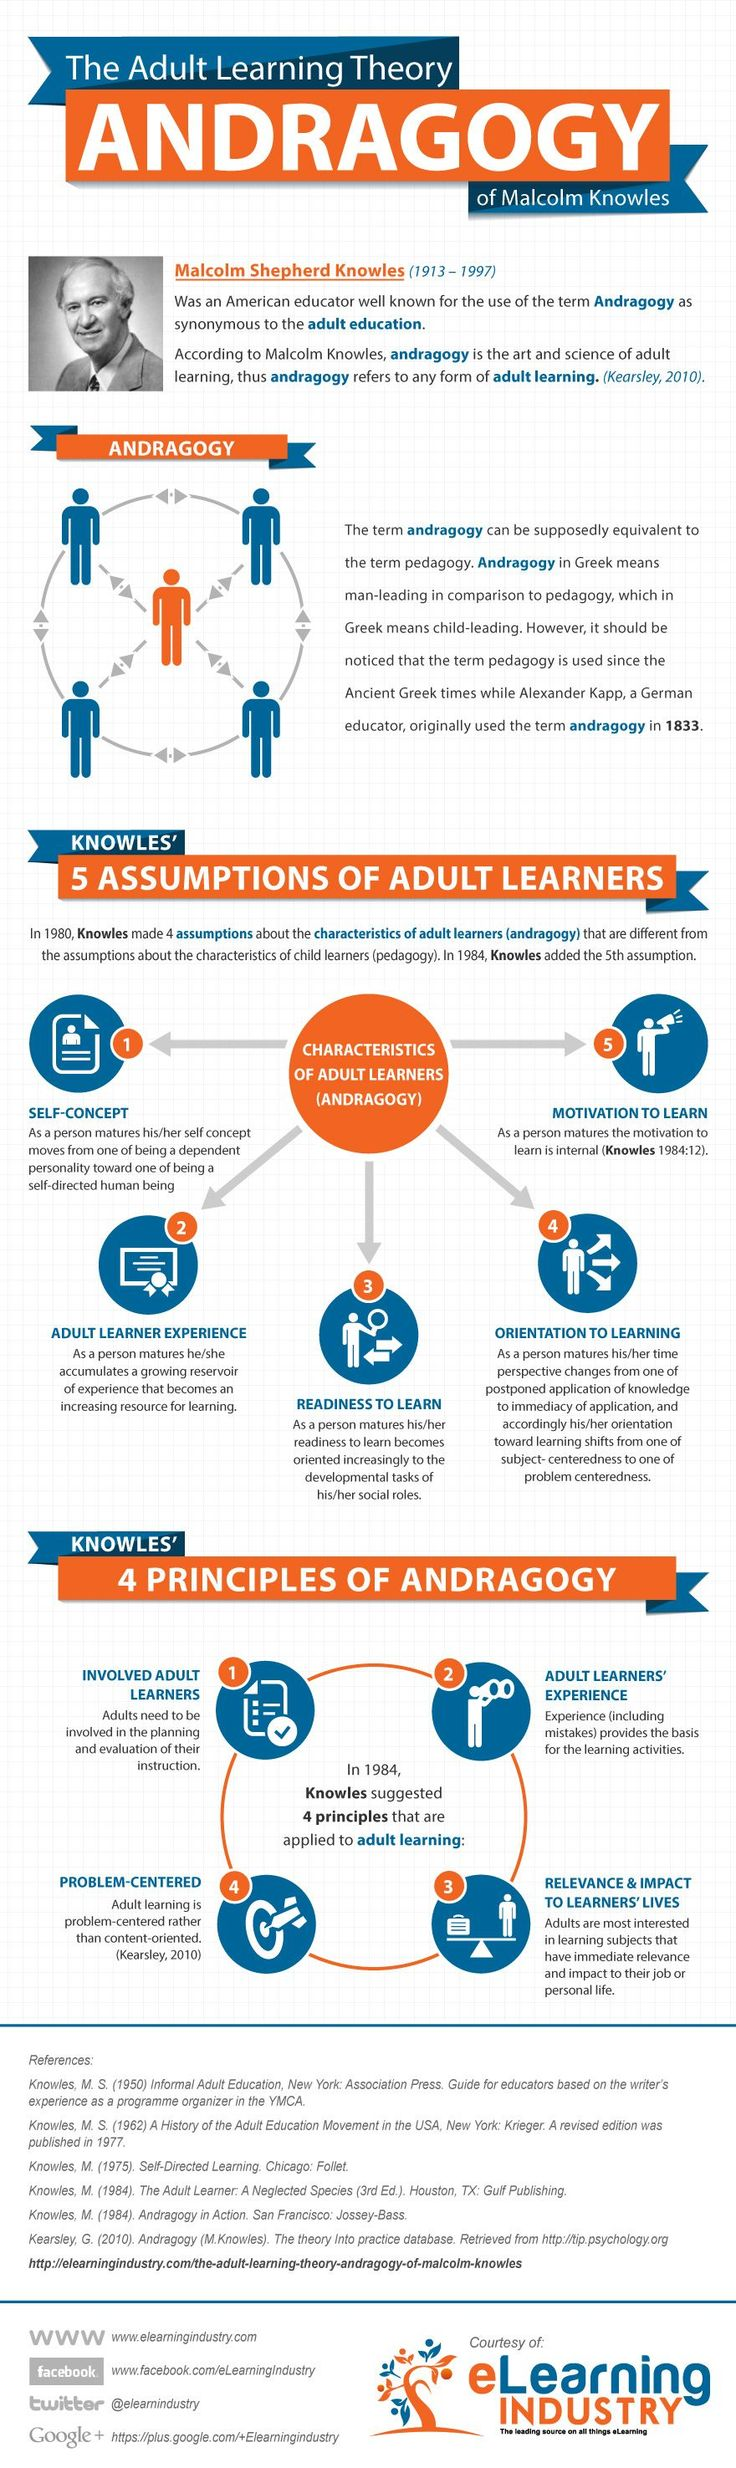 This website connects the adult learning principles to e-learning perfectly! What a great resource.